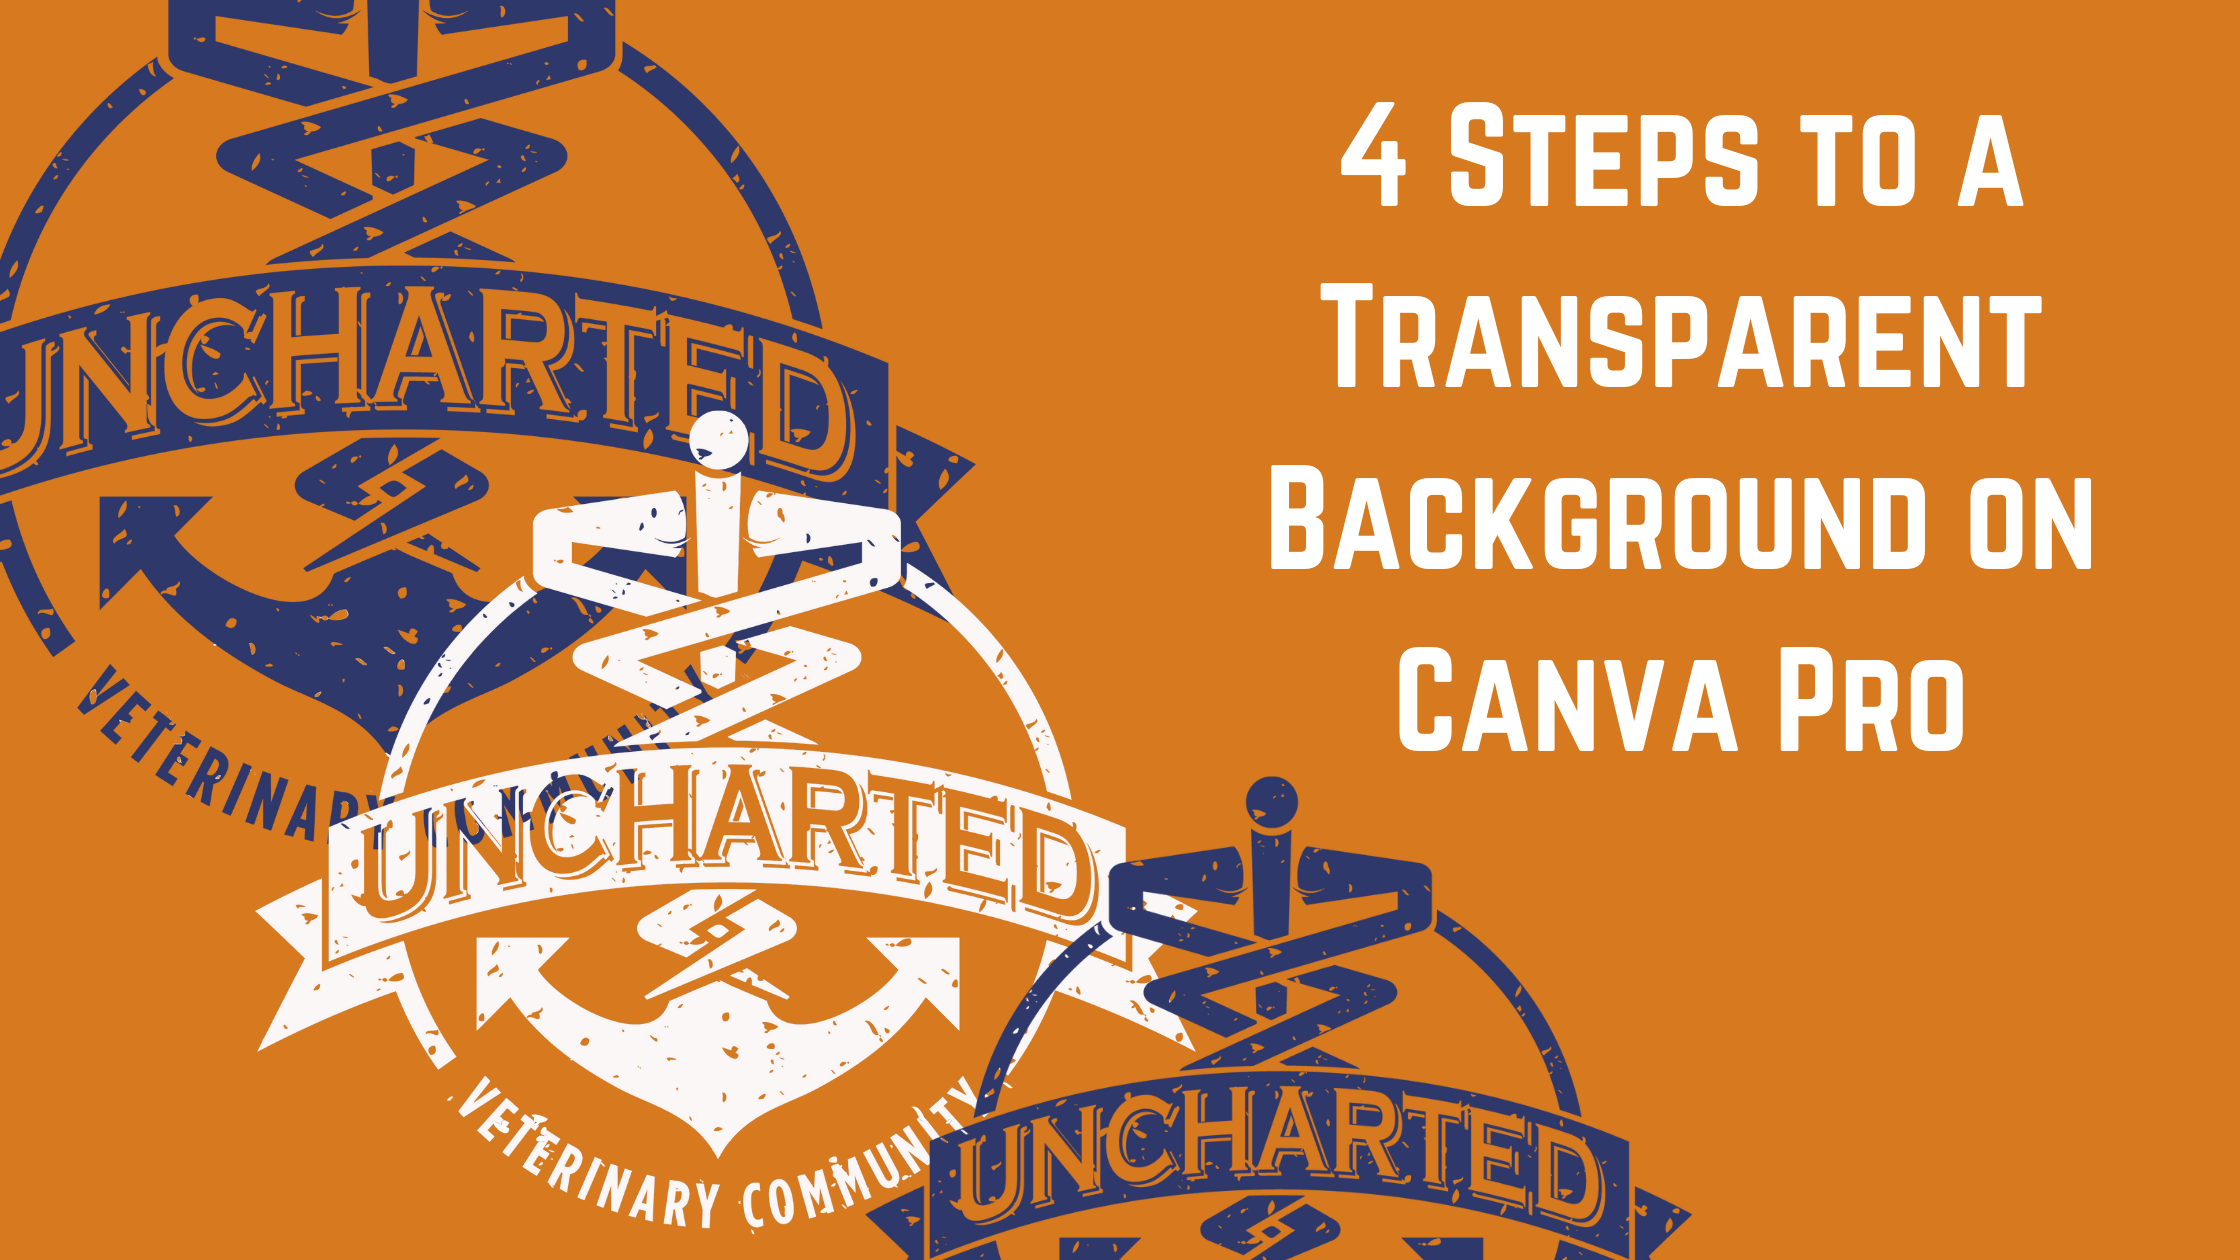 Image of Uncharted Veterinary Conmmunity logos, Text - 4 Steps to a Transparent Background on Canva Pro